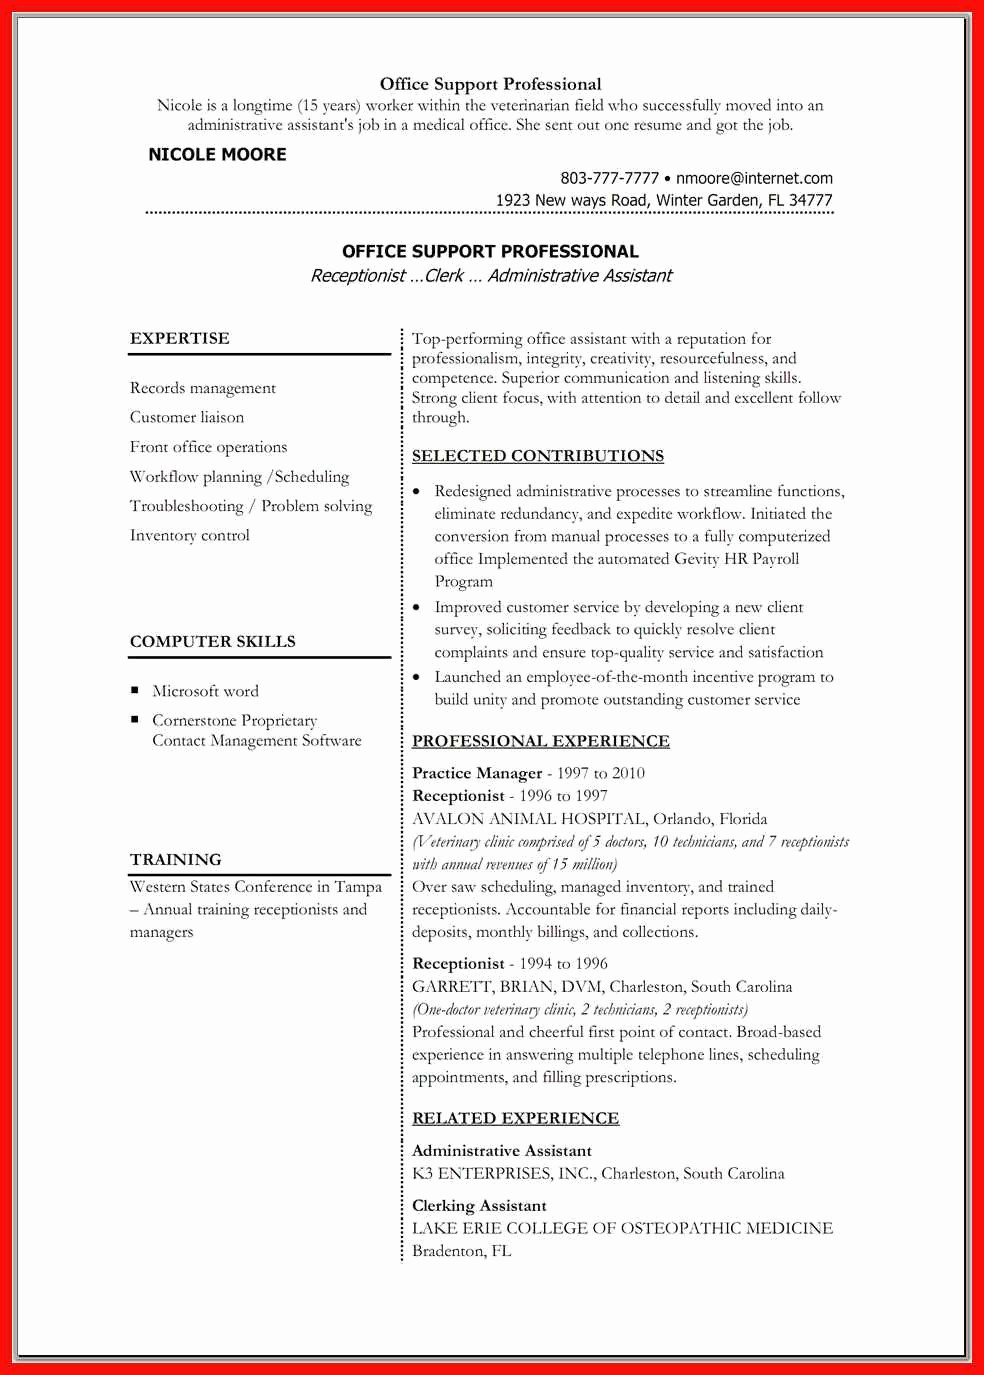 Resume format In Ms Word New Resume Word Doc Template